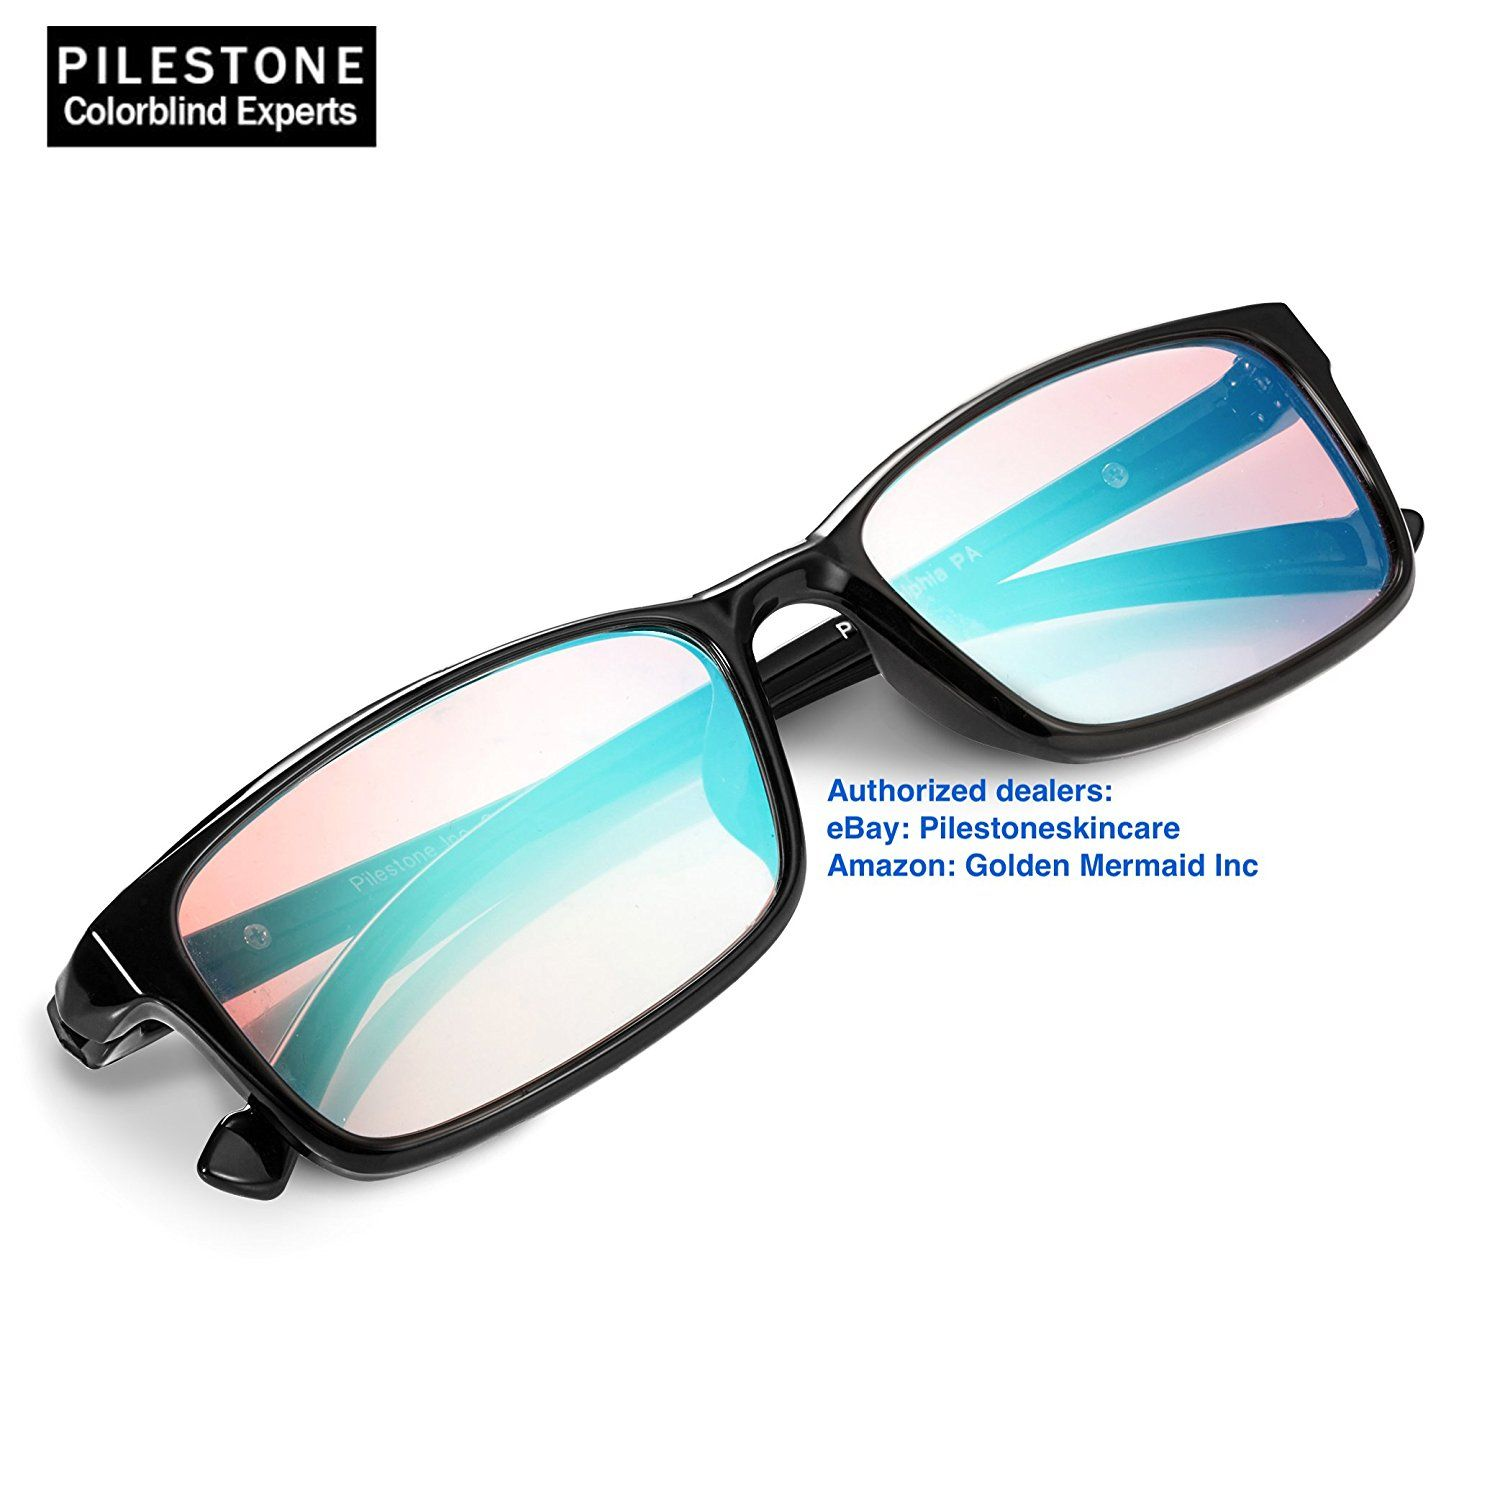 08faec09fa0 Pilestone® TP-012 Color Blind Corrective Glasses for Red-Green Blindness (Color  Blind Glasses) Corrects Red-Green blindness. Best results can be expected  ...